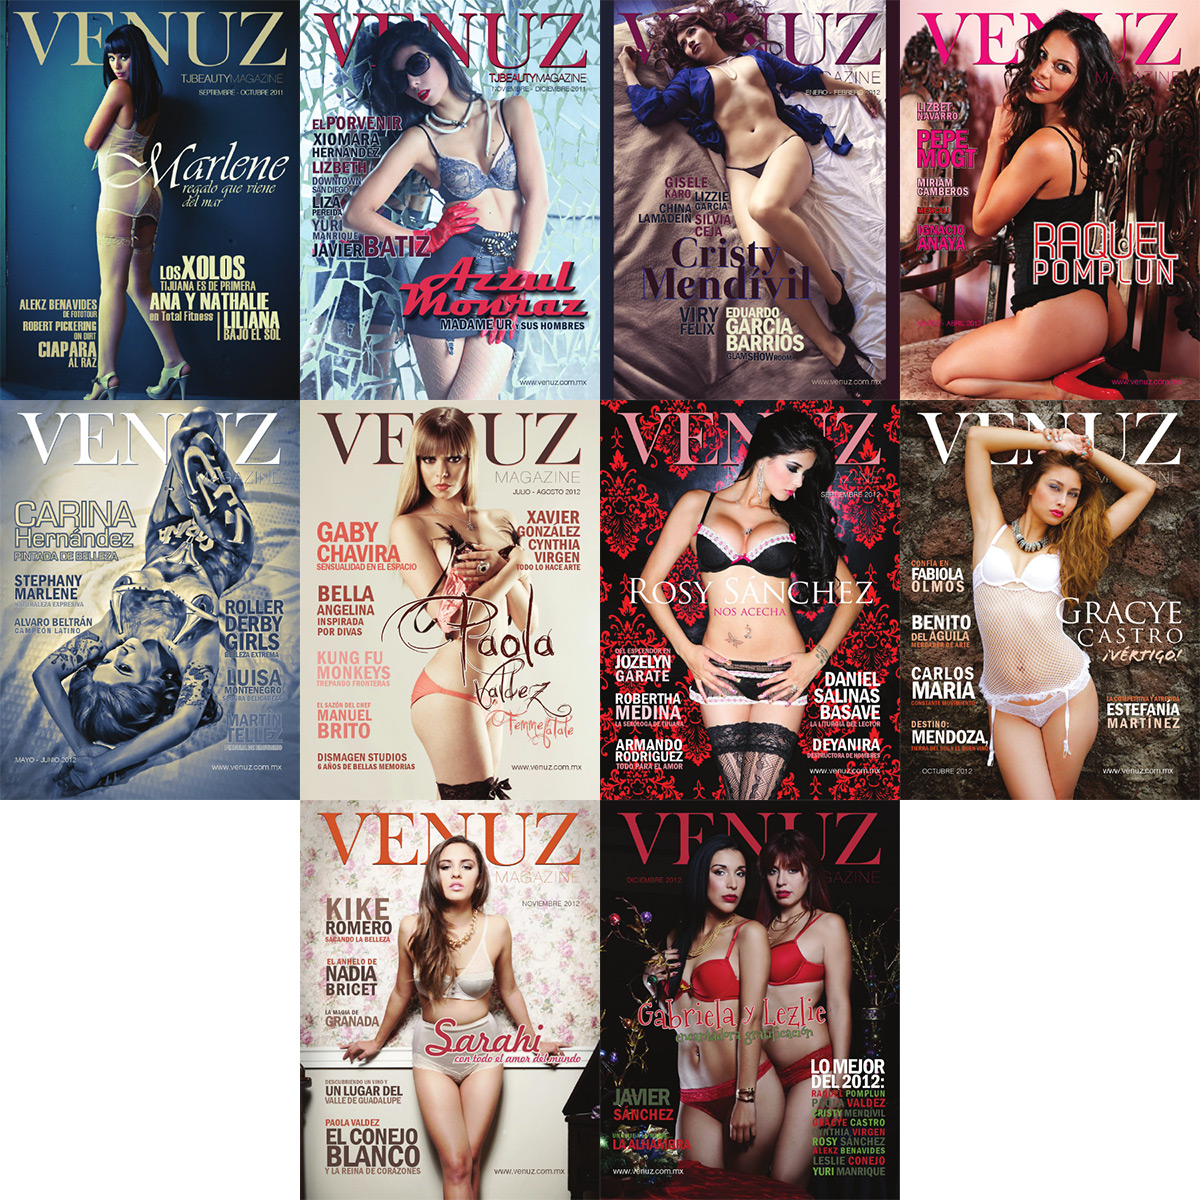 Venuz Magazine 2011-2012 Years Collection free download